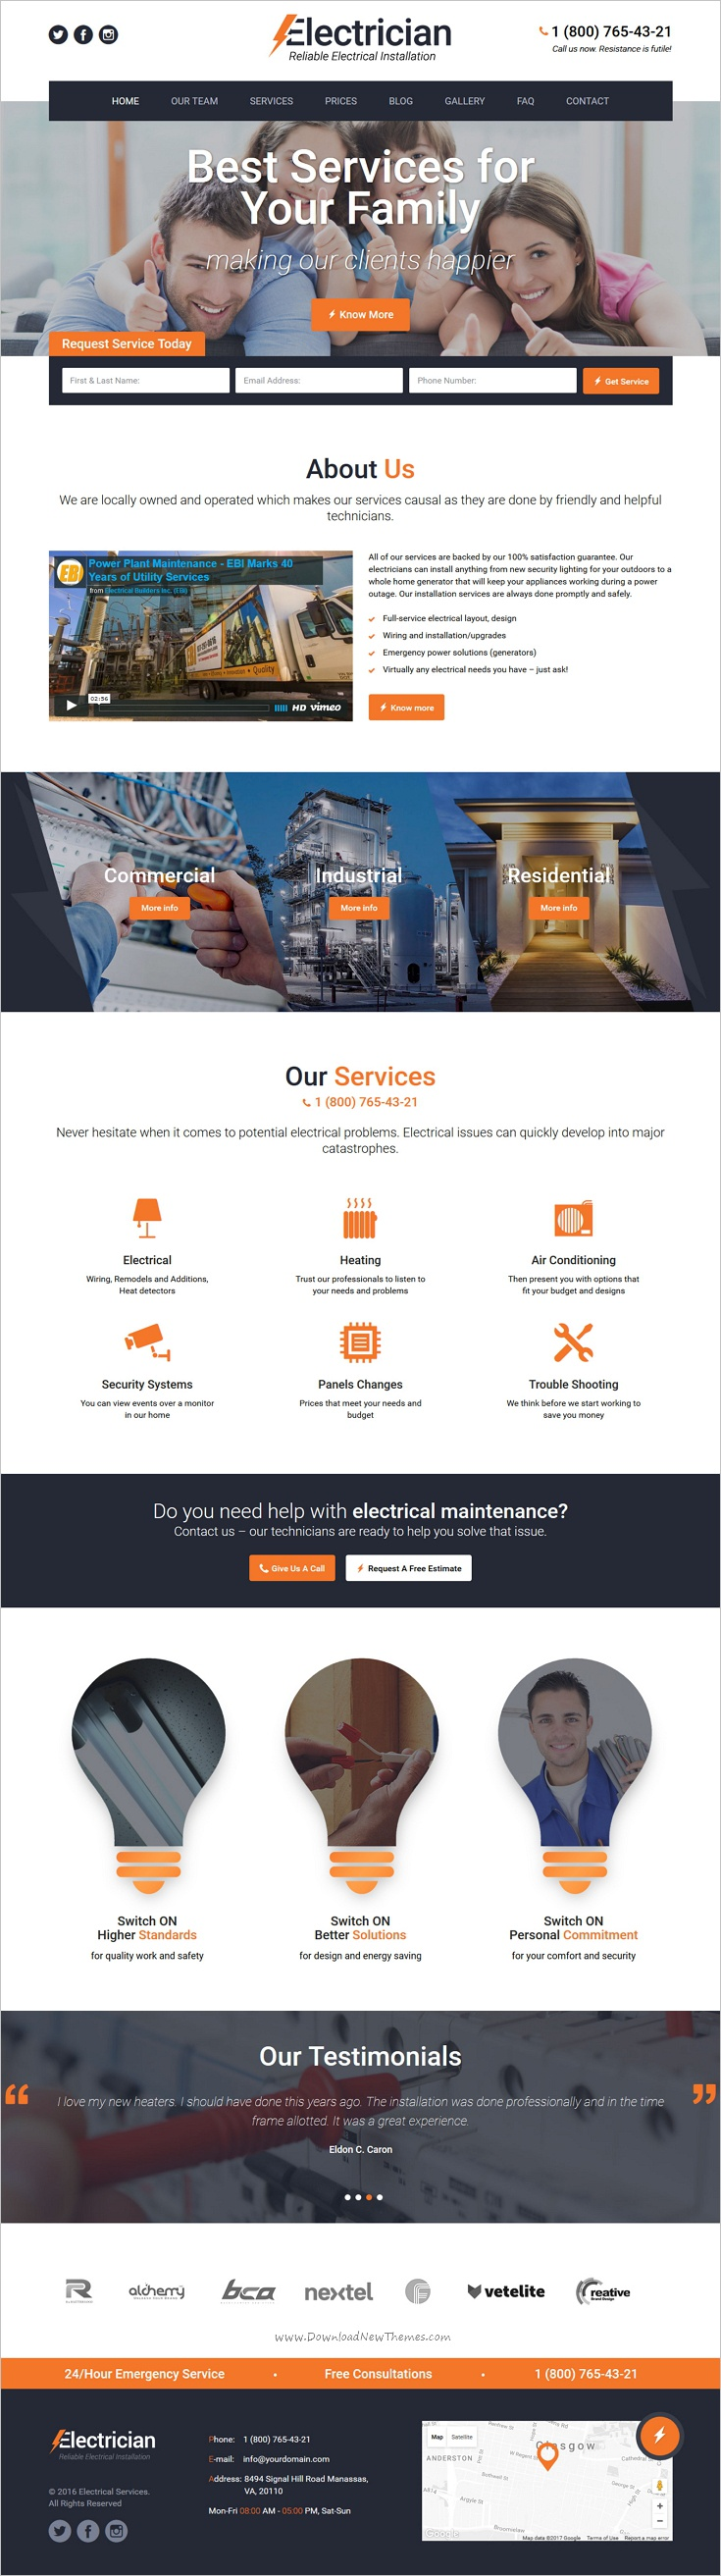 electrician is a wonderful responsive html bootstrap template for